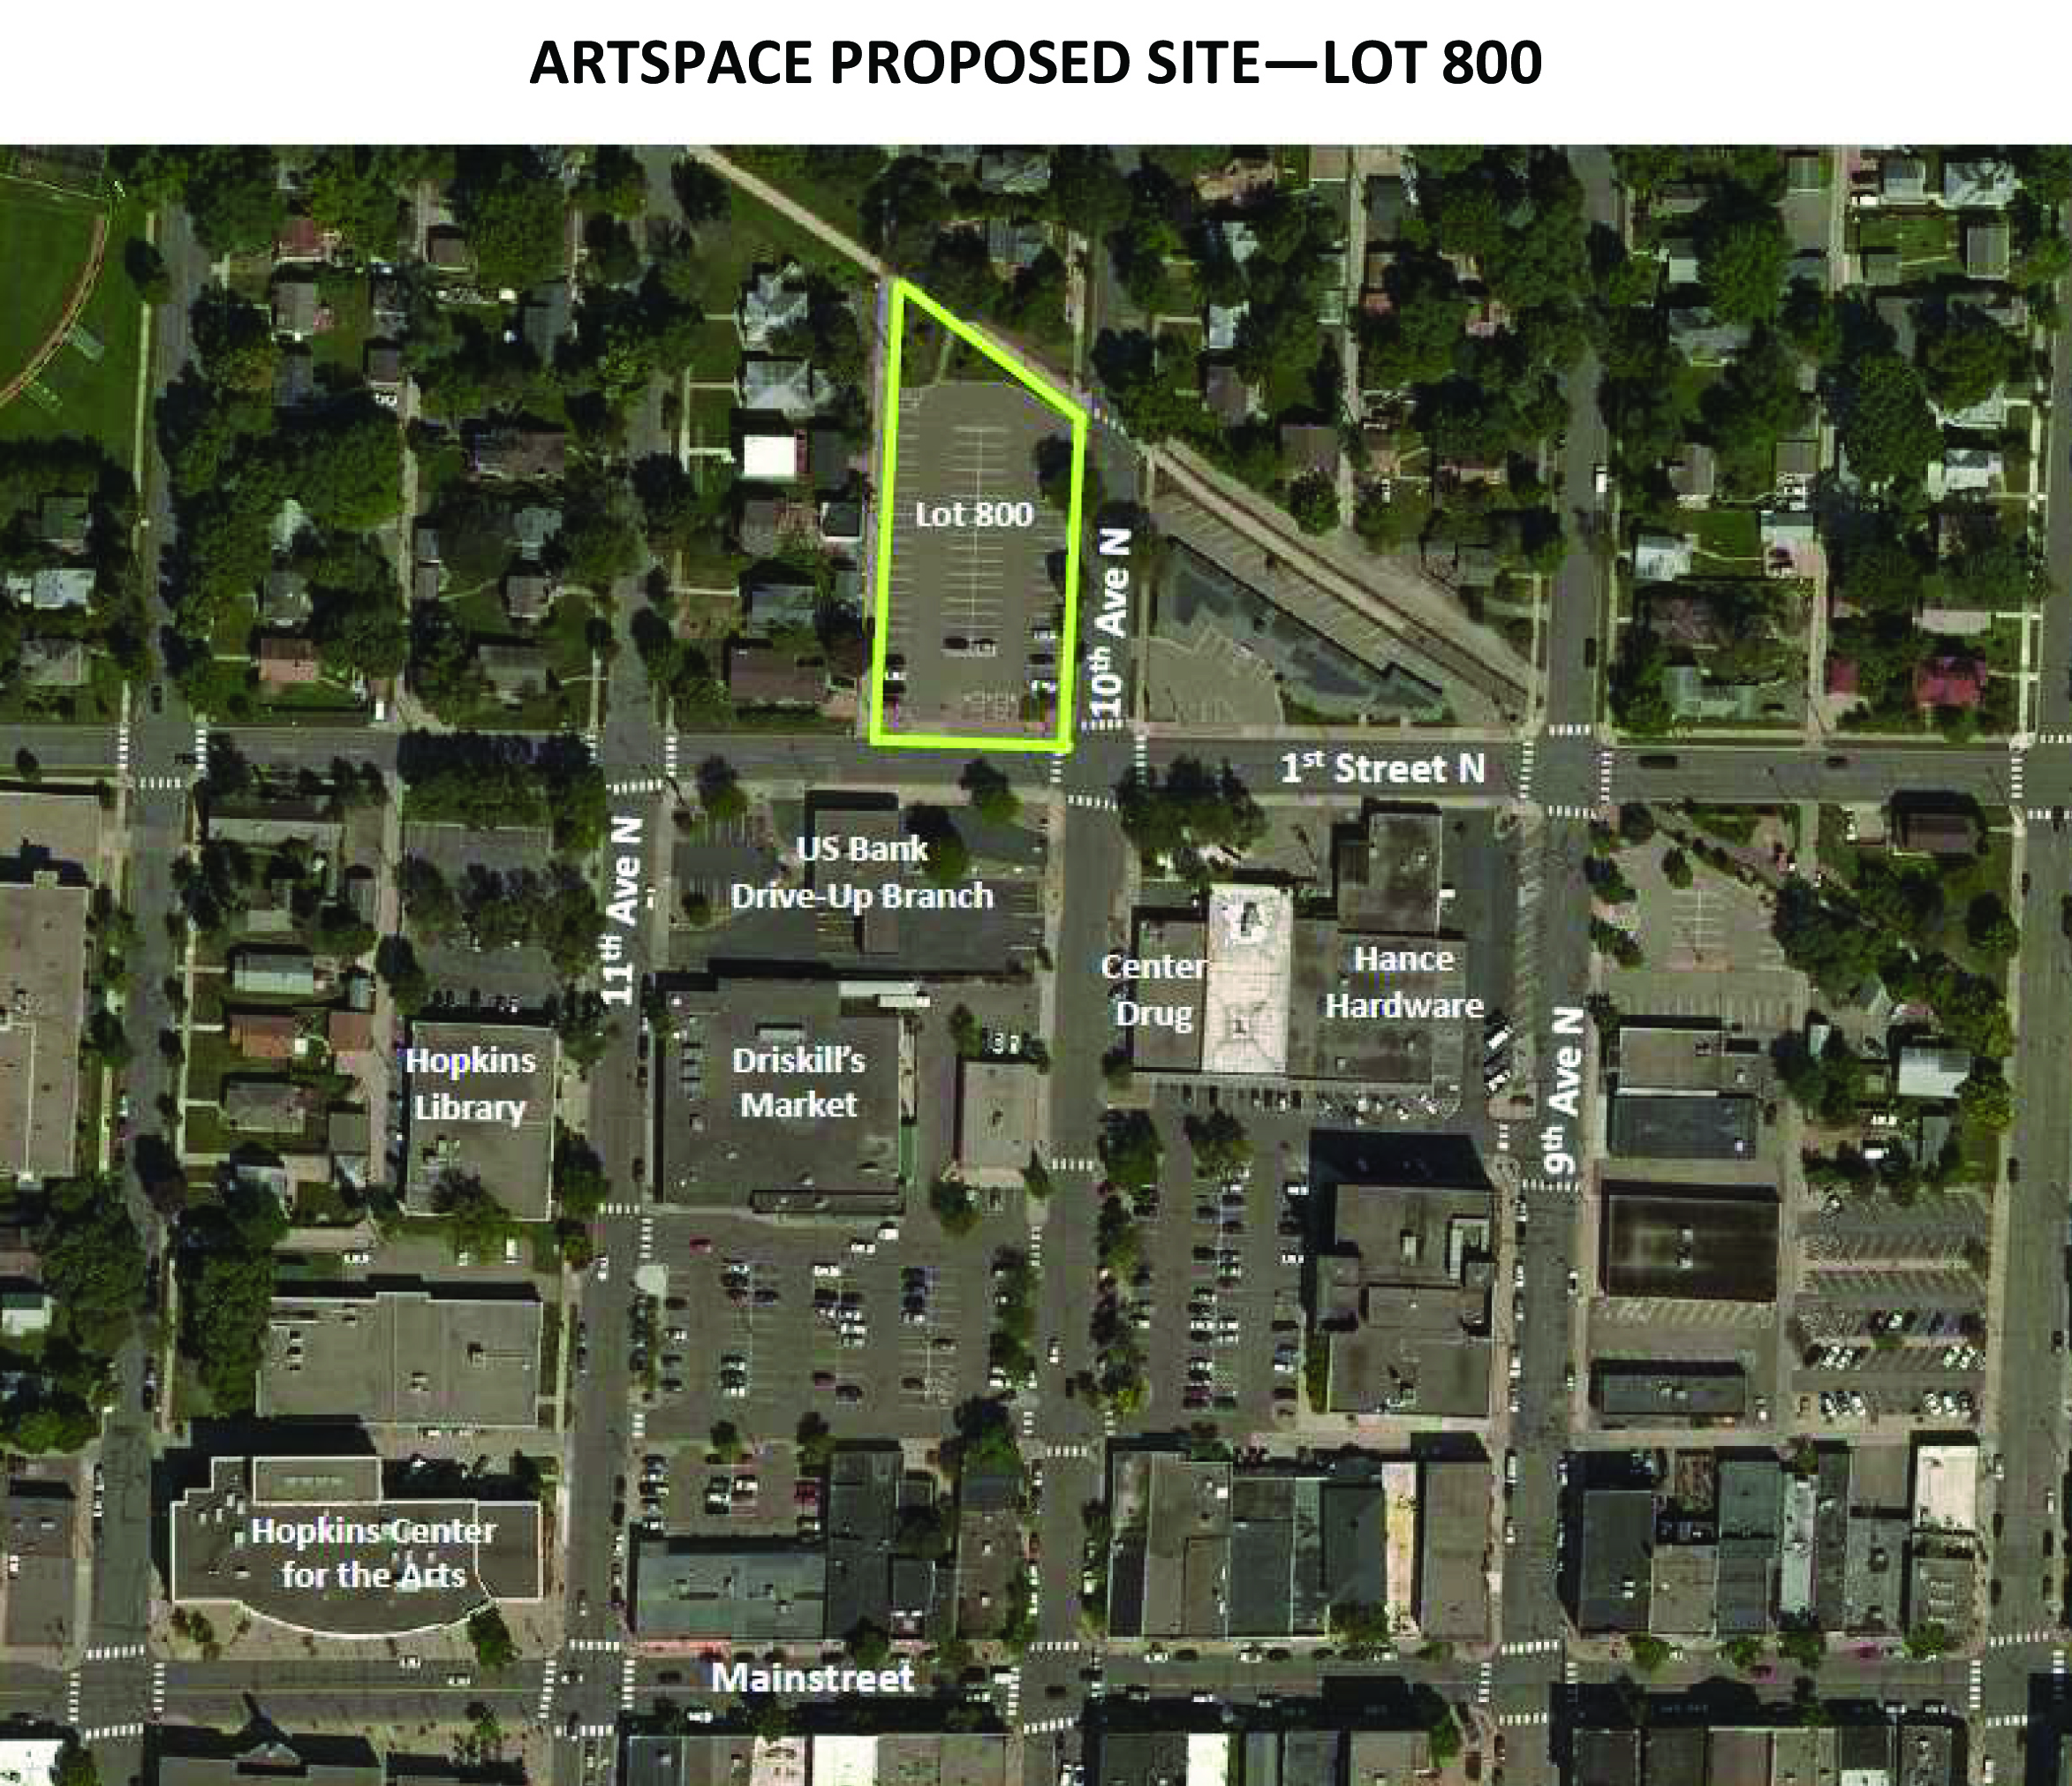 Artspace Proposed Site Lot 800